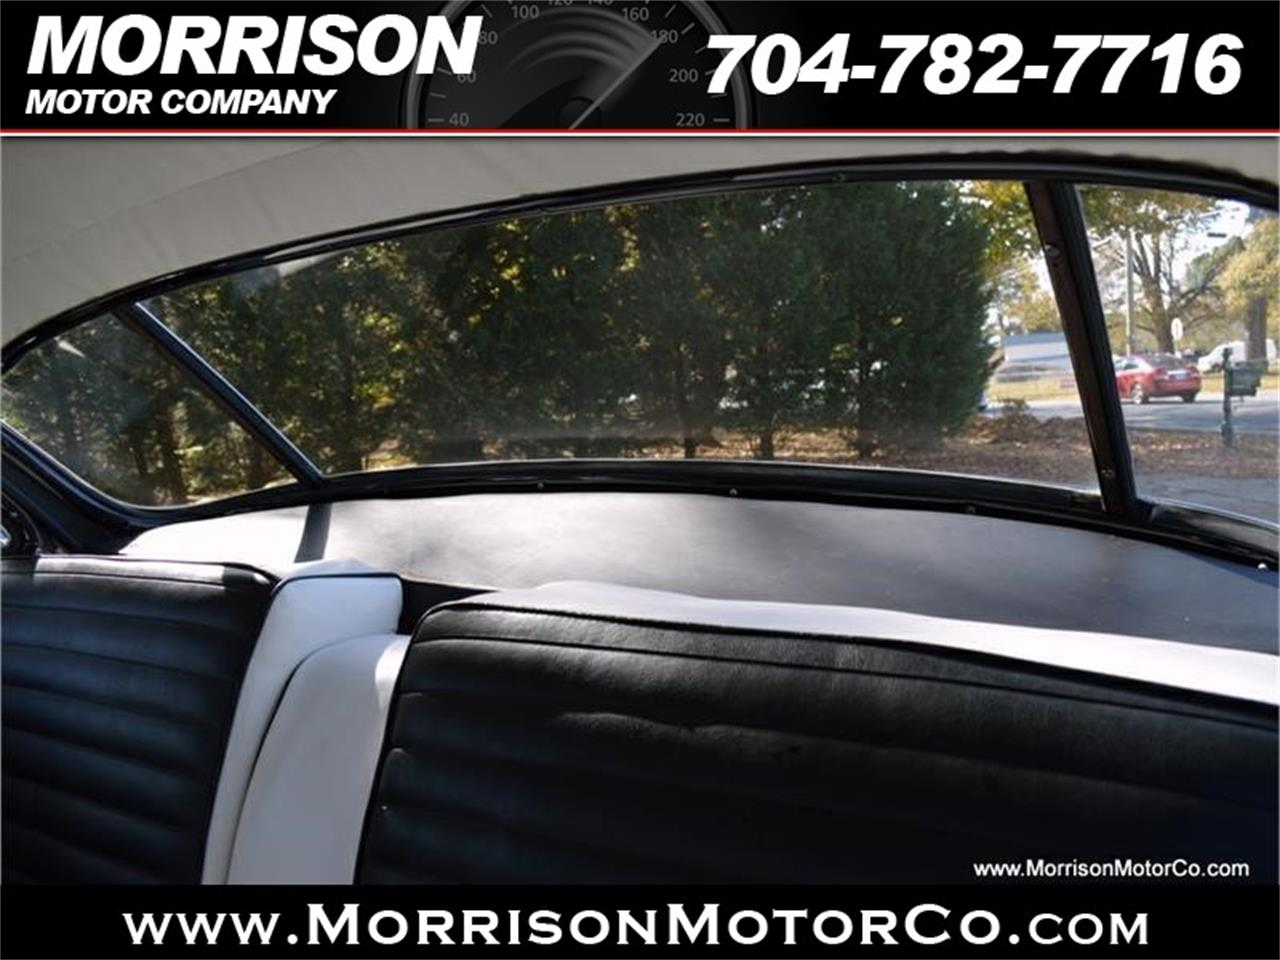 Large Picture of 1951 Cadillac DeVille located in North Carolina - $19,900.00 Offered by Morrison Motor Company - MBTG